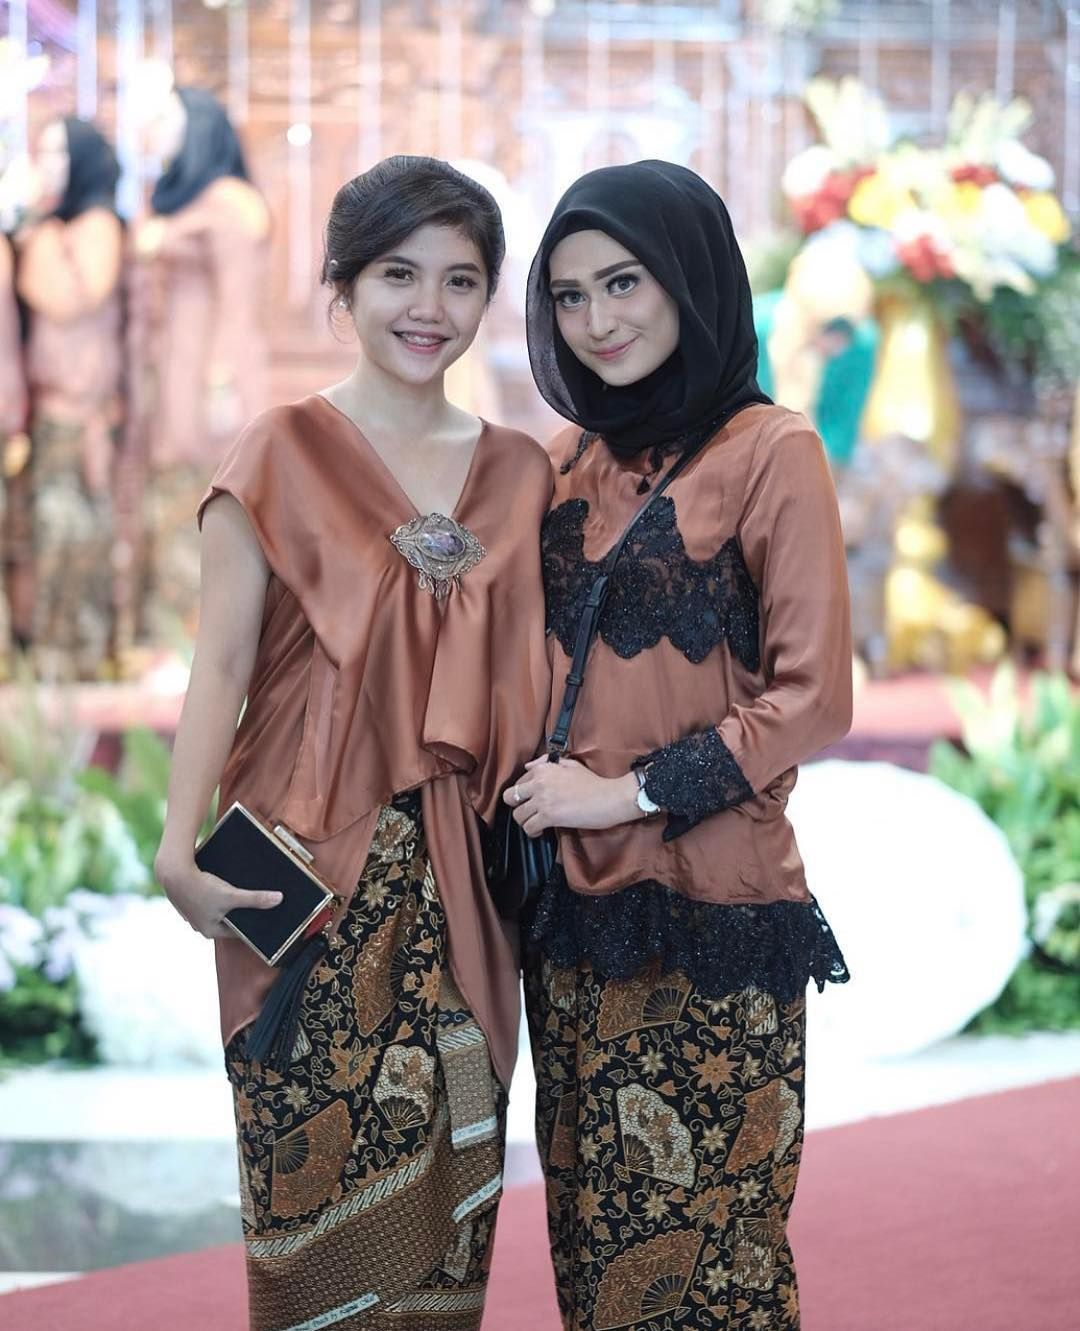 Model kebaya terbaru แฟชนมสลม pinterest kebaya models and